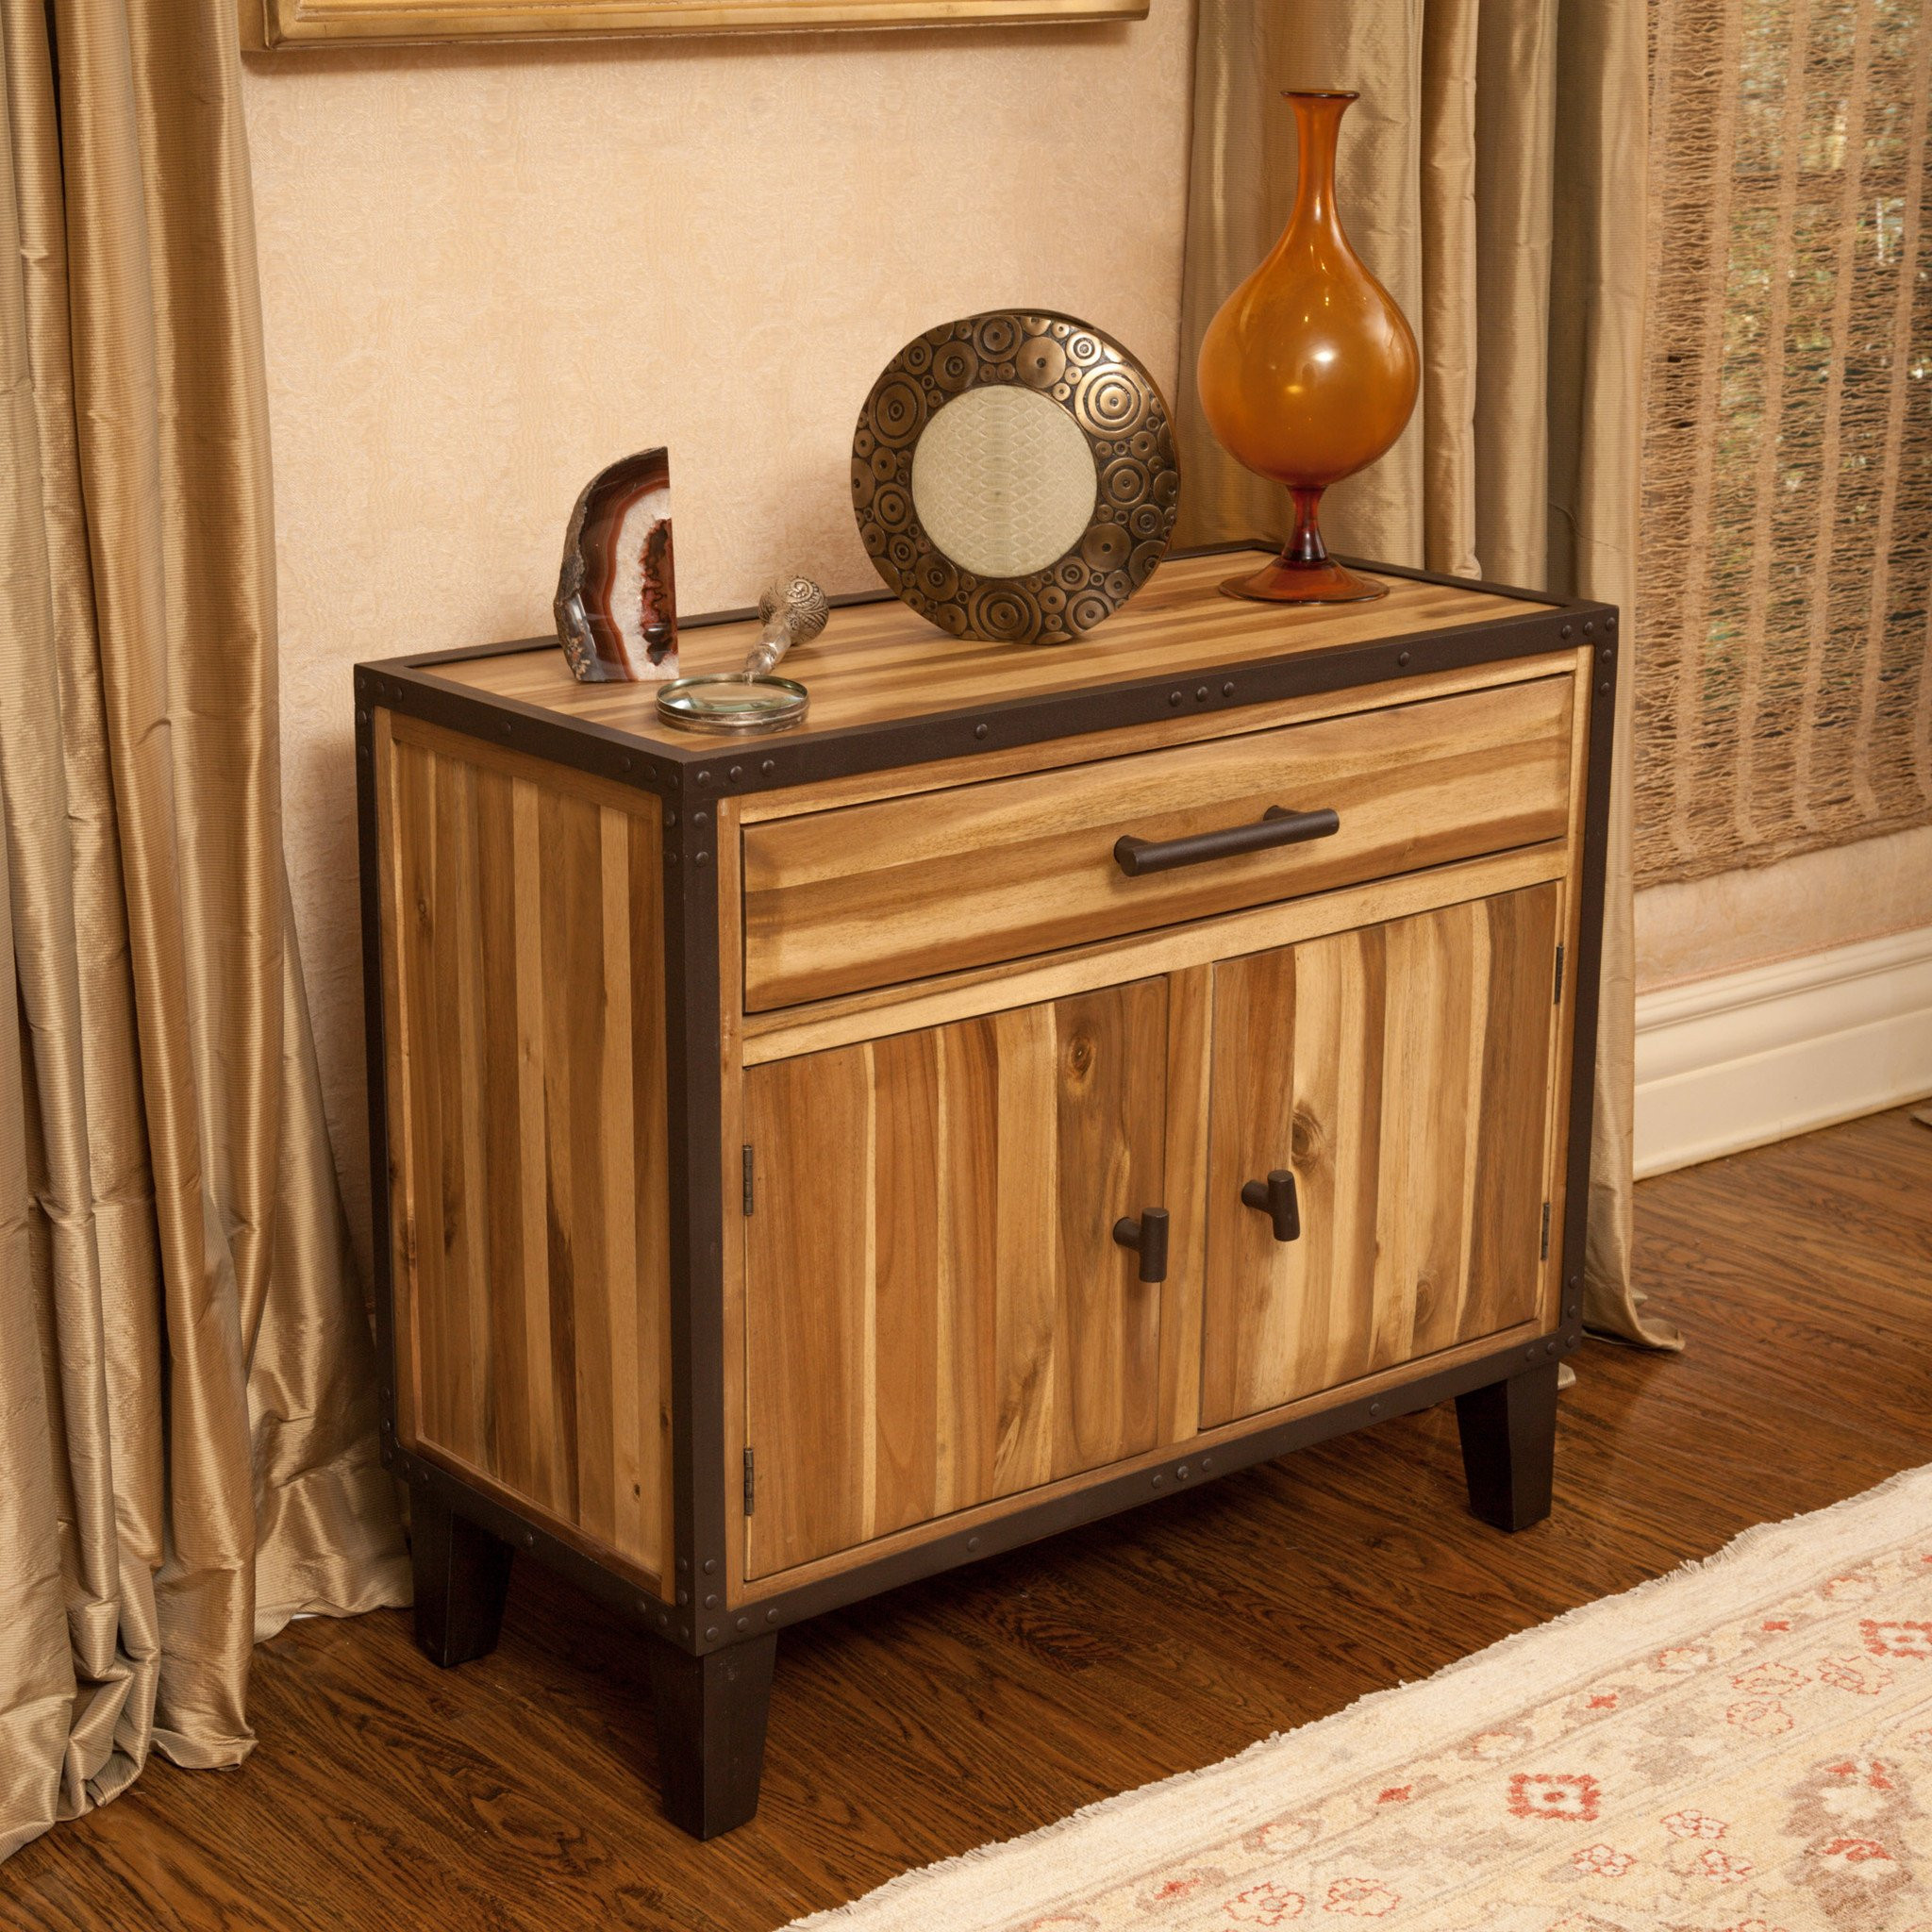 Glendora Natural Stained Solid Wood Storage Chest...